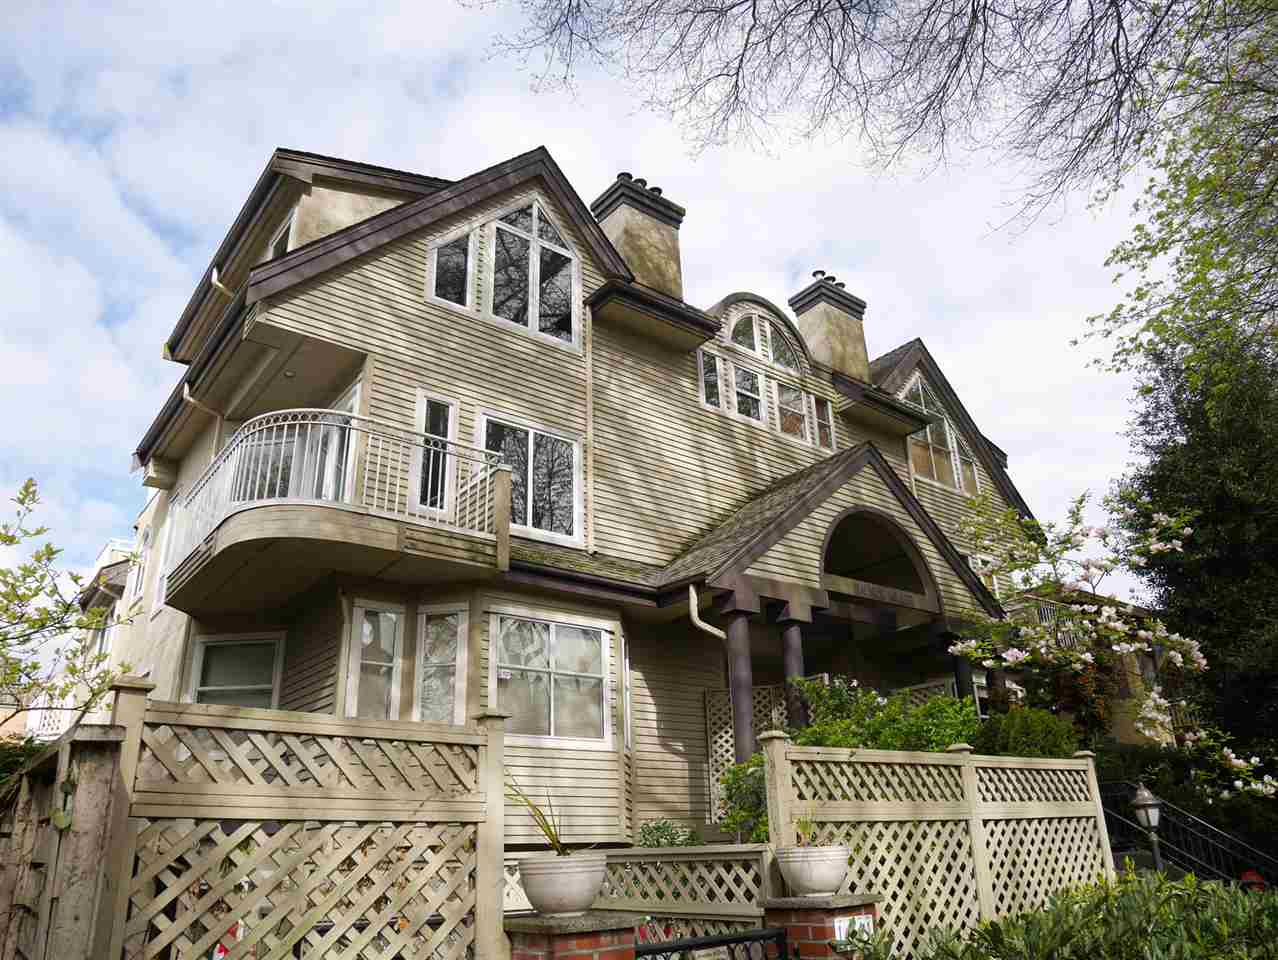 Main Photo: 1465 WALNUT Street in Vancouver: Kitsilano Townhouse for sale (Vancouver West)  : MLS® # R2170959